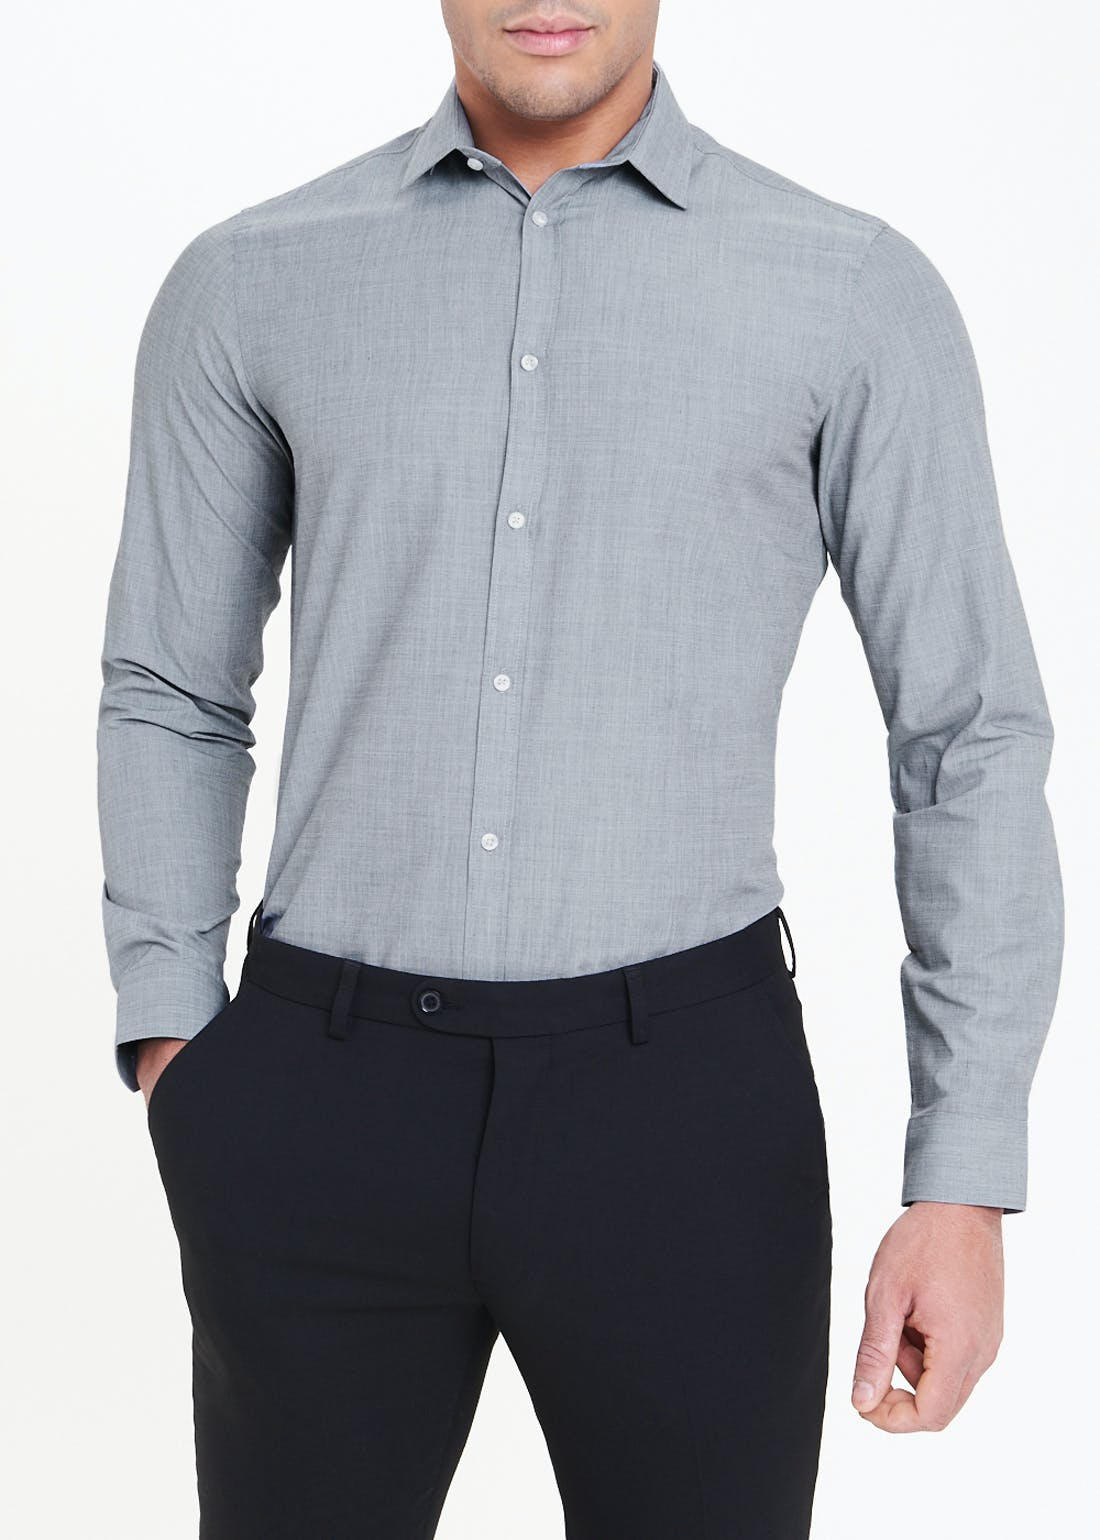 Taylor & Wright 2 Pack Long Sleeve Slim Fit Shirts